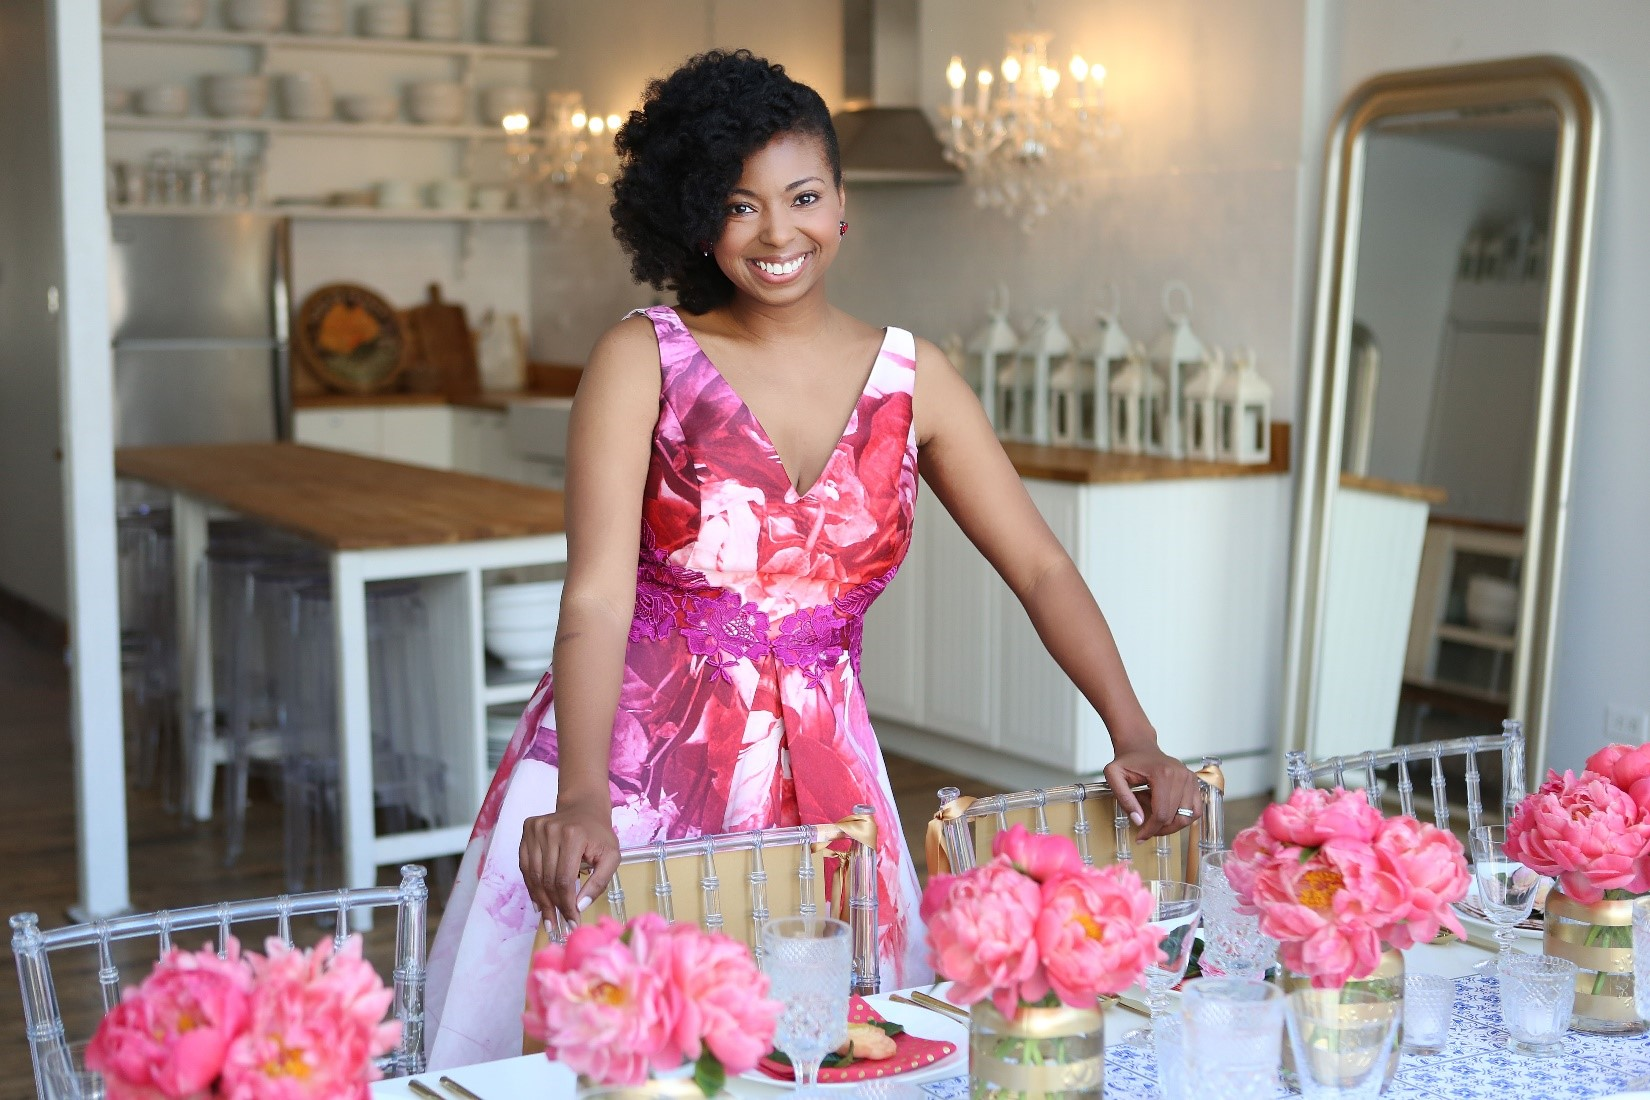 Profile picture of Jocelyn Delk Adams, entrepreneur and author of the book Grandbaby Cakes.